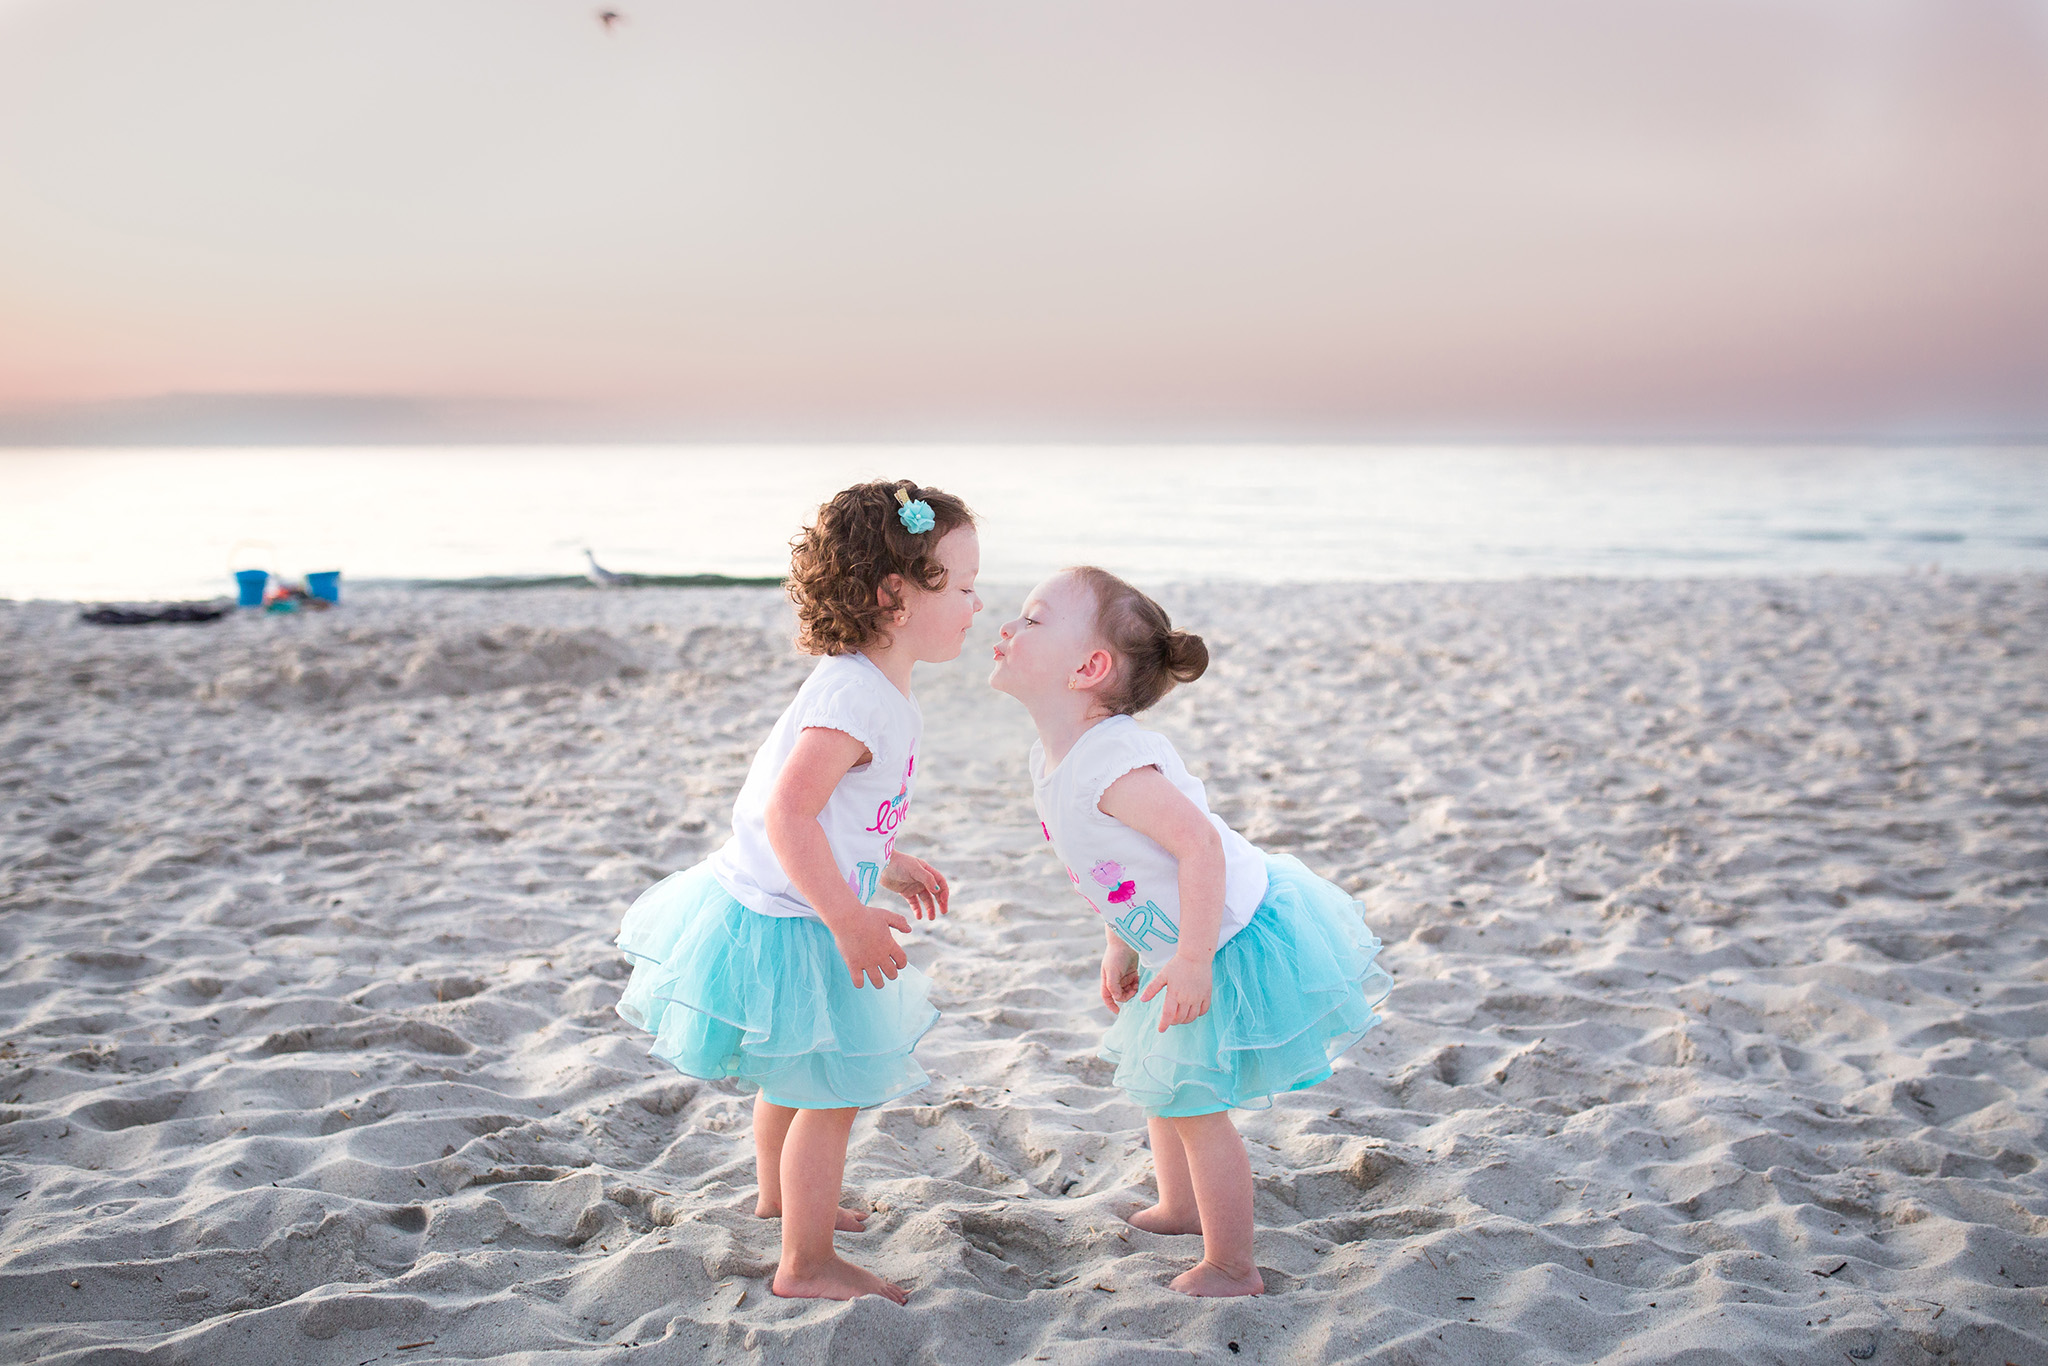 August 27: Six years ago in October I photographed their parents wedding. We met on the beach for some sunset pictures and then had ice cream, and now the girls are asking if they can play with me when they go to the park. This is my favorite part of my job: seeing families grow and change over time.